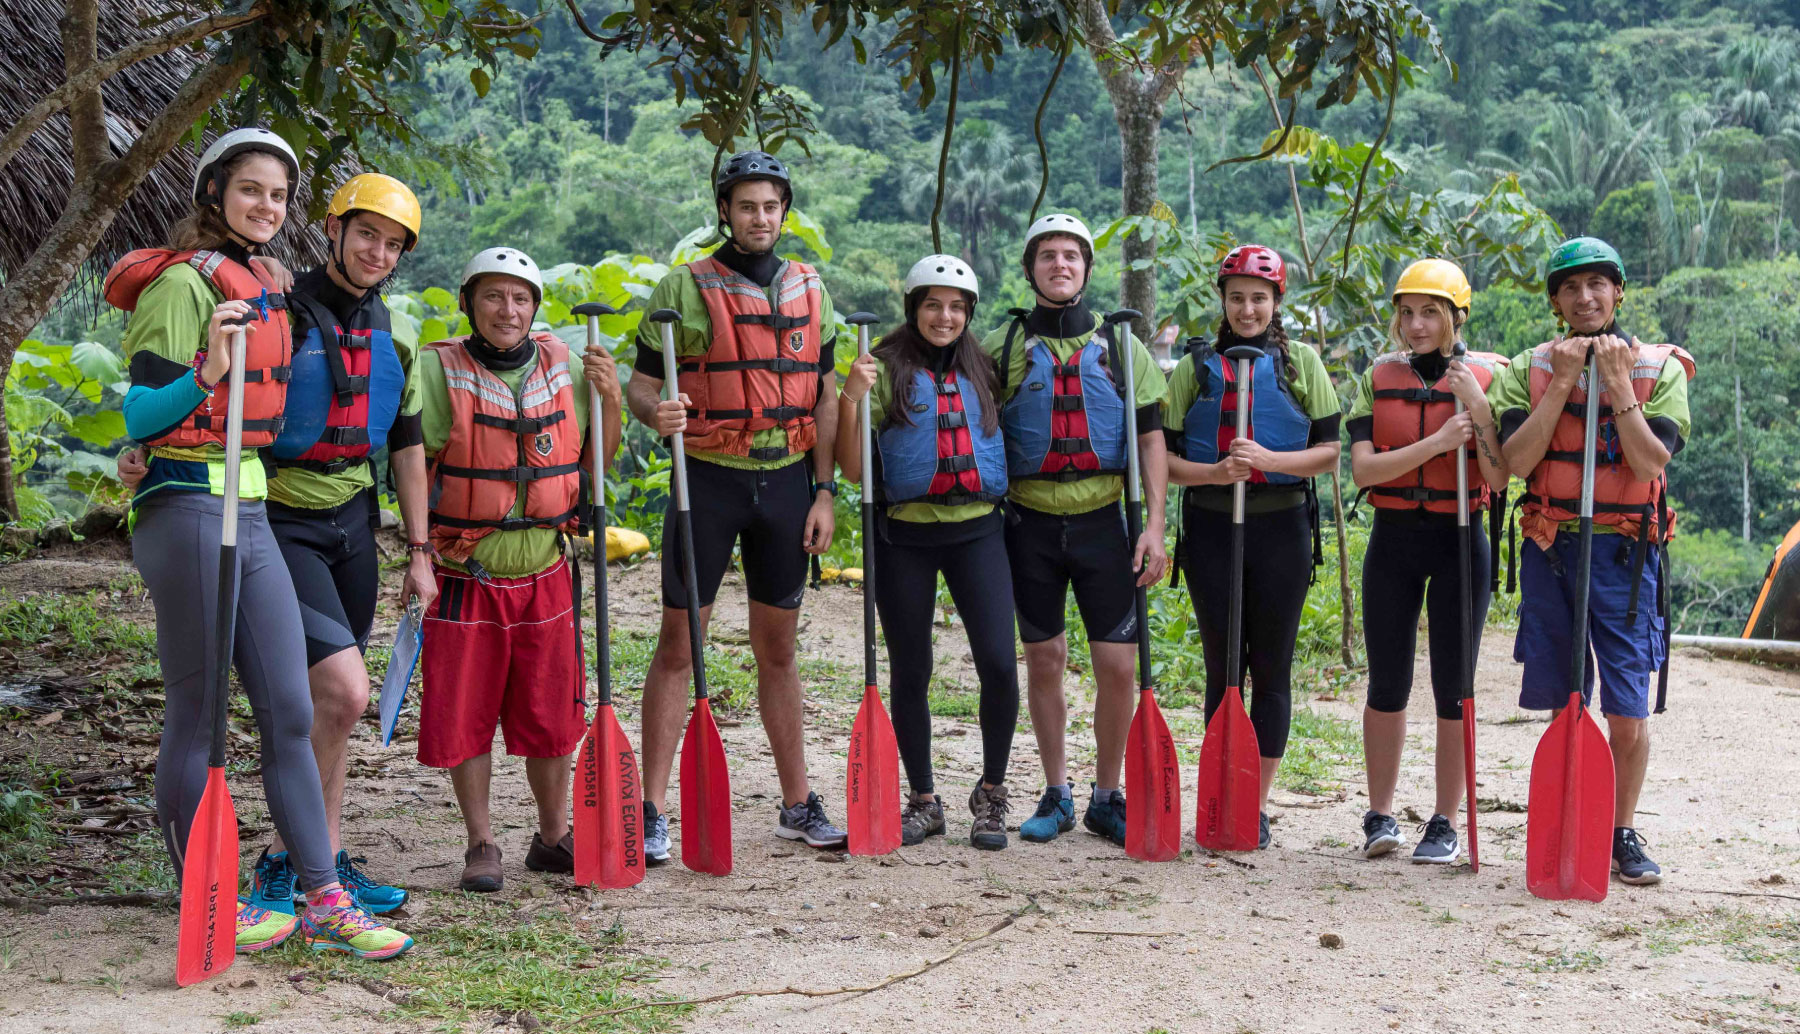 People with rafting paddles ready to do rafting